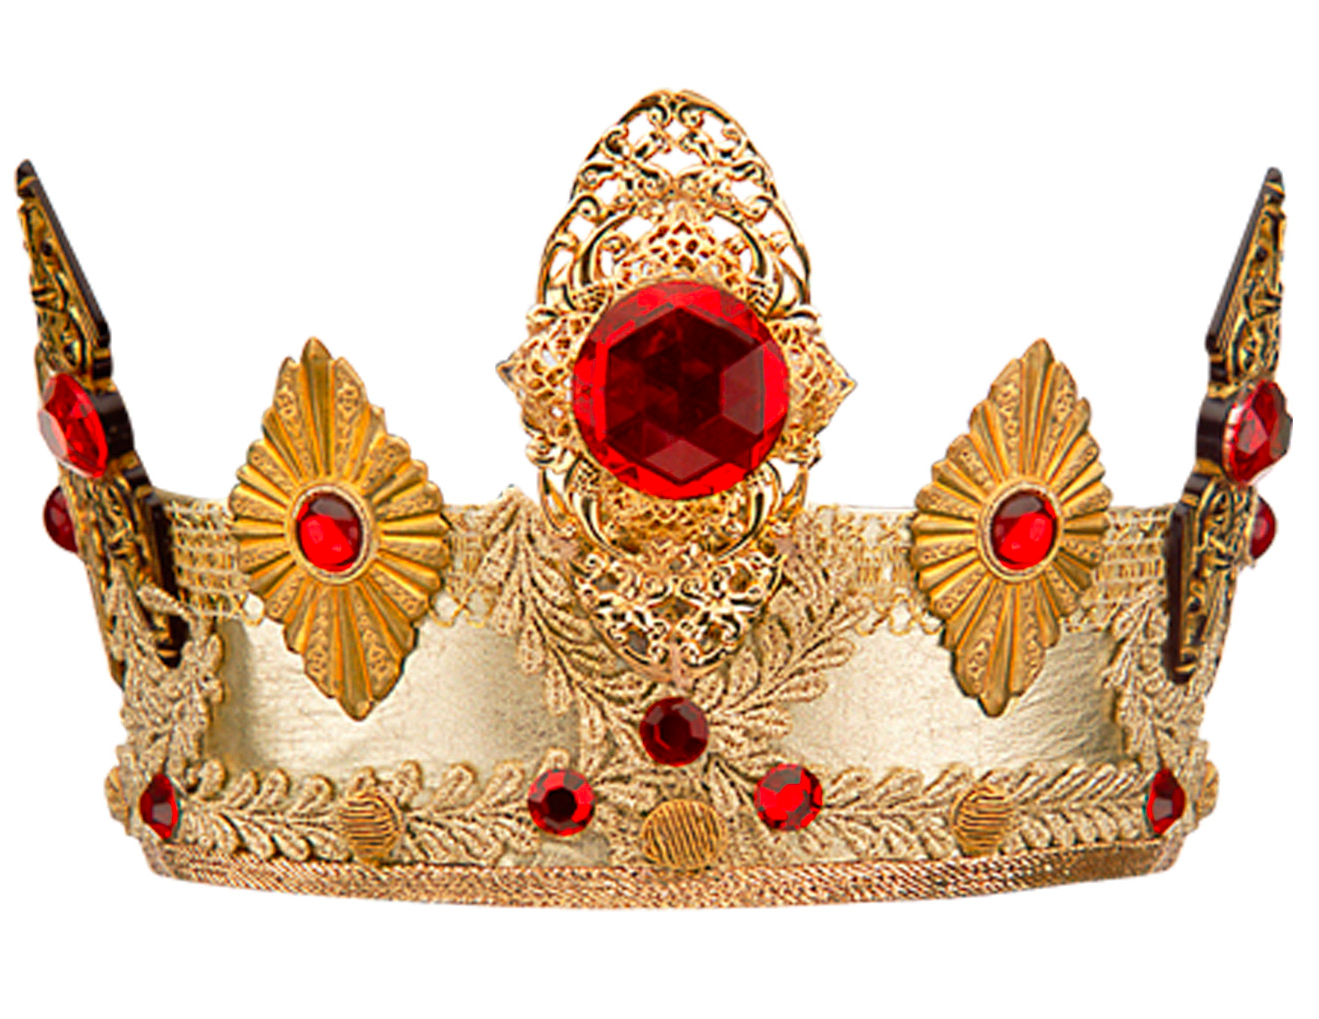 Transparent Crown Png Esthers crownQueen Crown Transparent Png